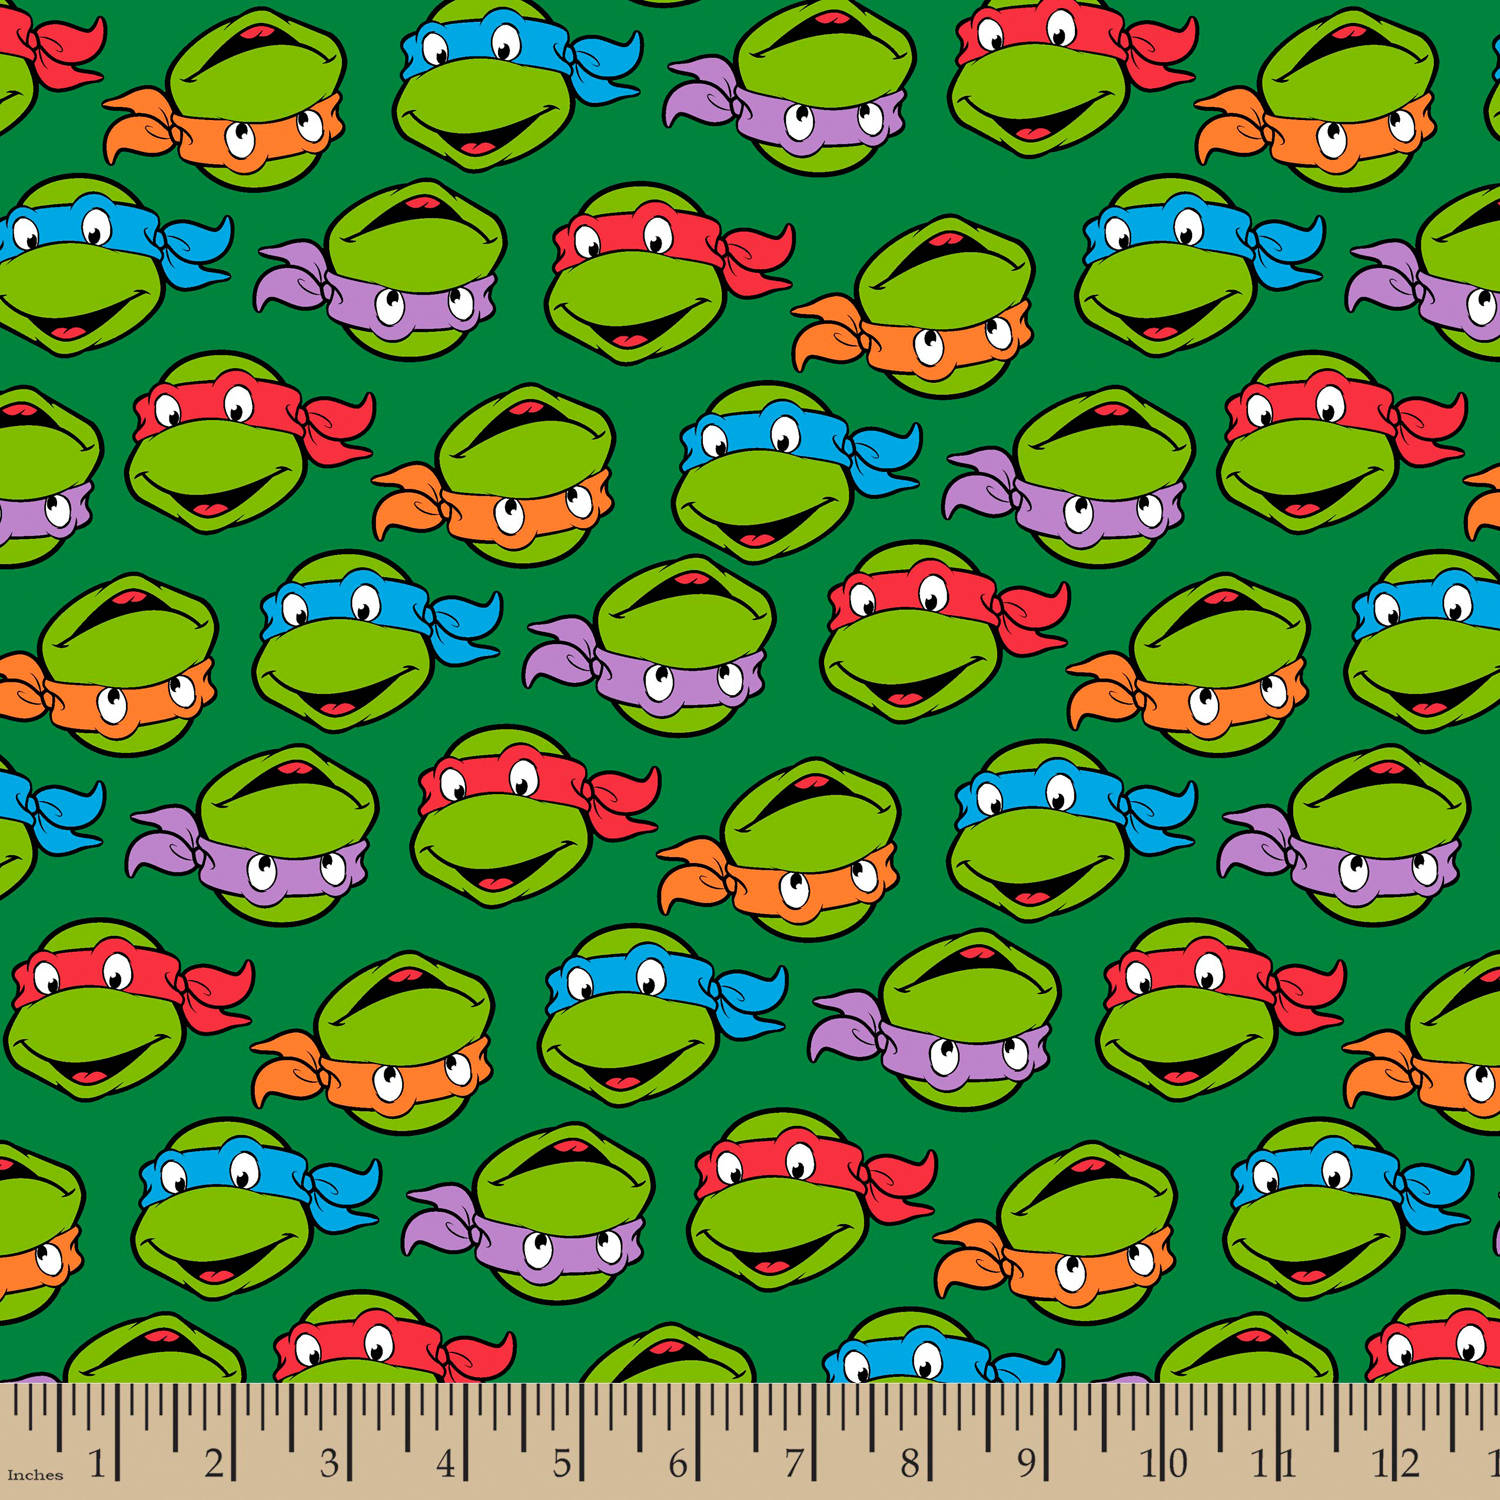 "TMNT Turtle Heads, Flannel, Green, 42/43"" Width, Fabric by the Yard"